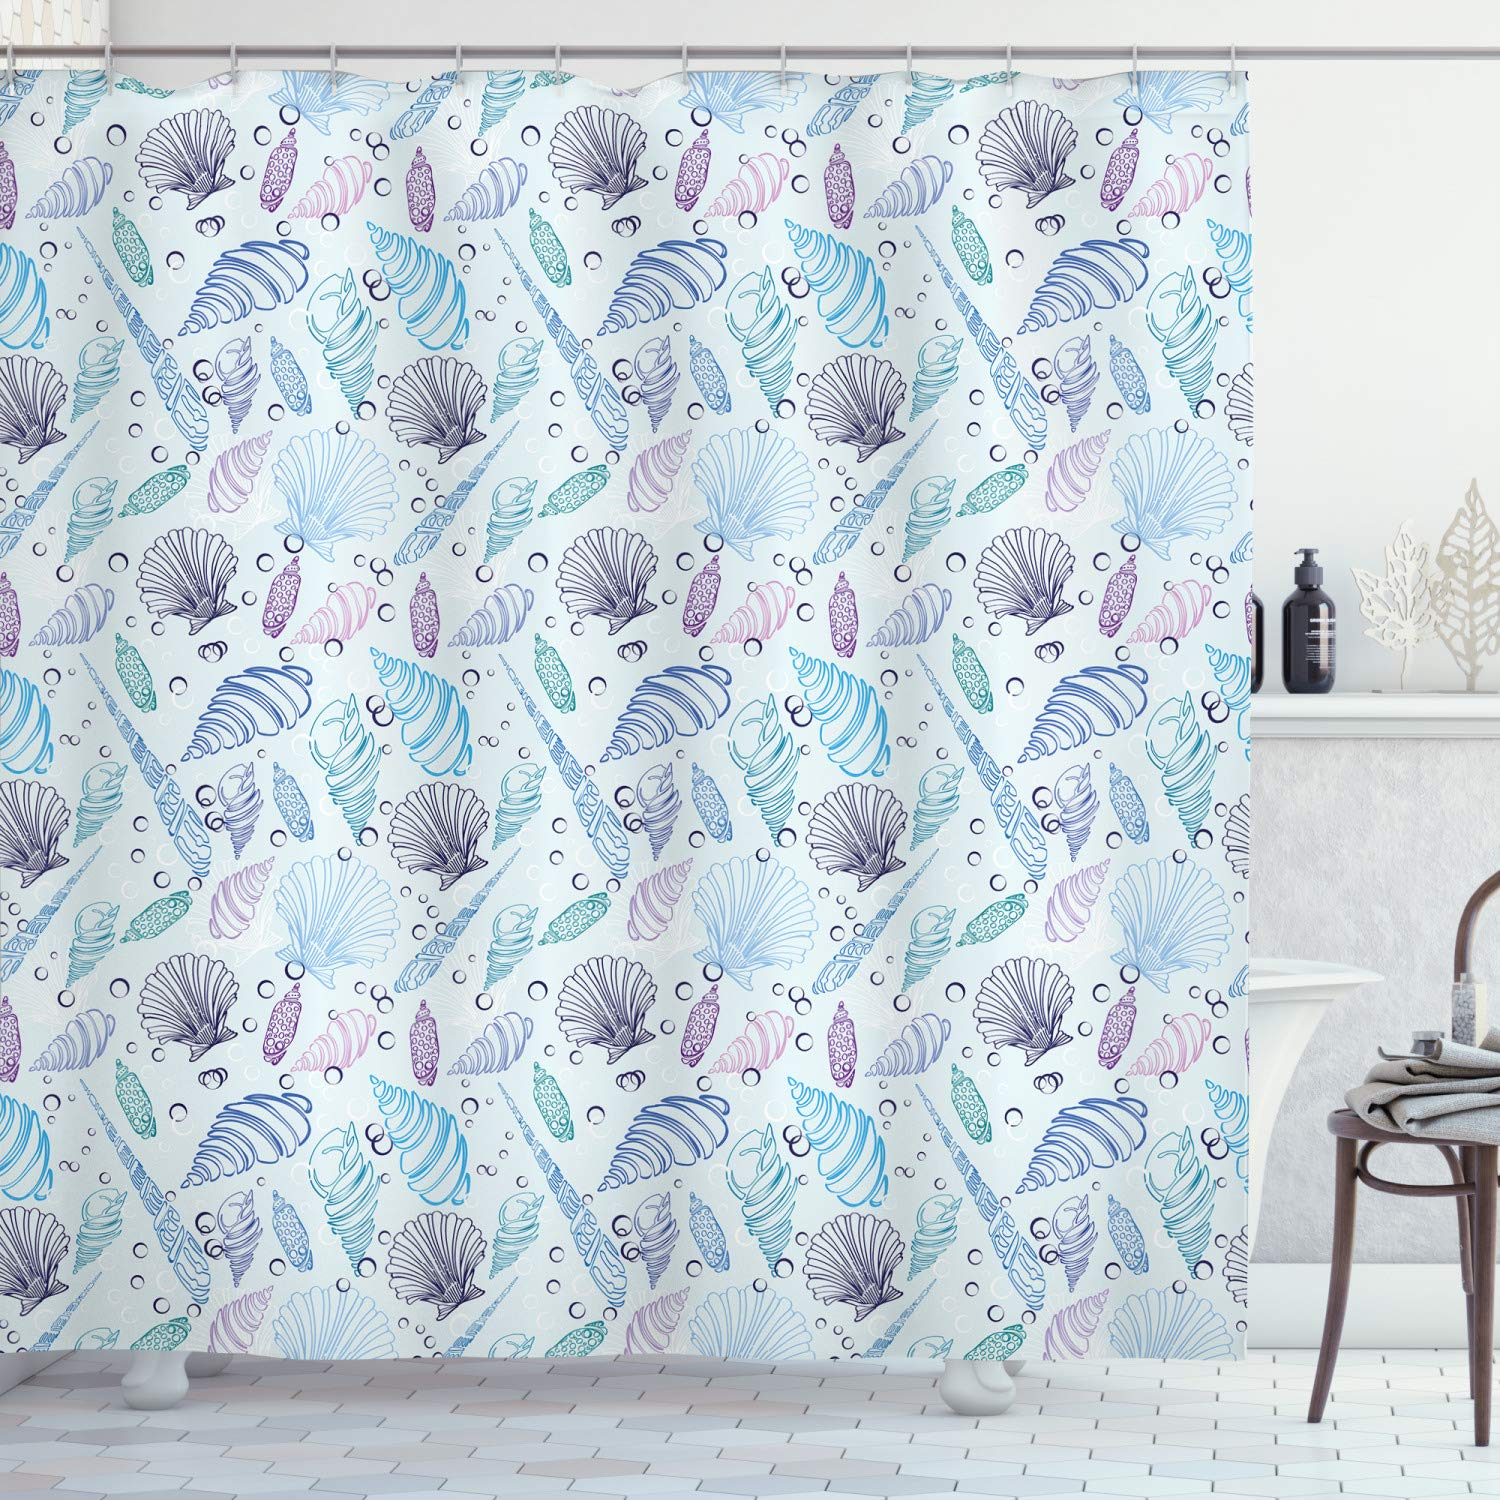 Sketch of 2 Sportsman Fencing Duel Agility Attack Discipline Sports Hobby Ambesonne Sports Shower Curtain 75 Long Cloth Fabric Bathroom Decor Set with Hooks Violet Blue